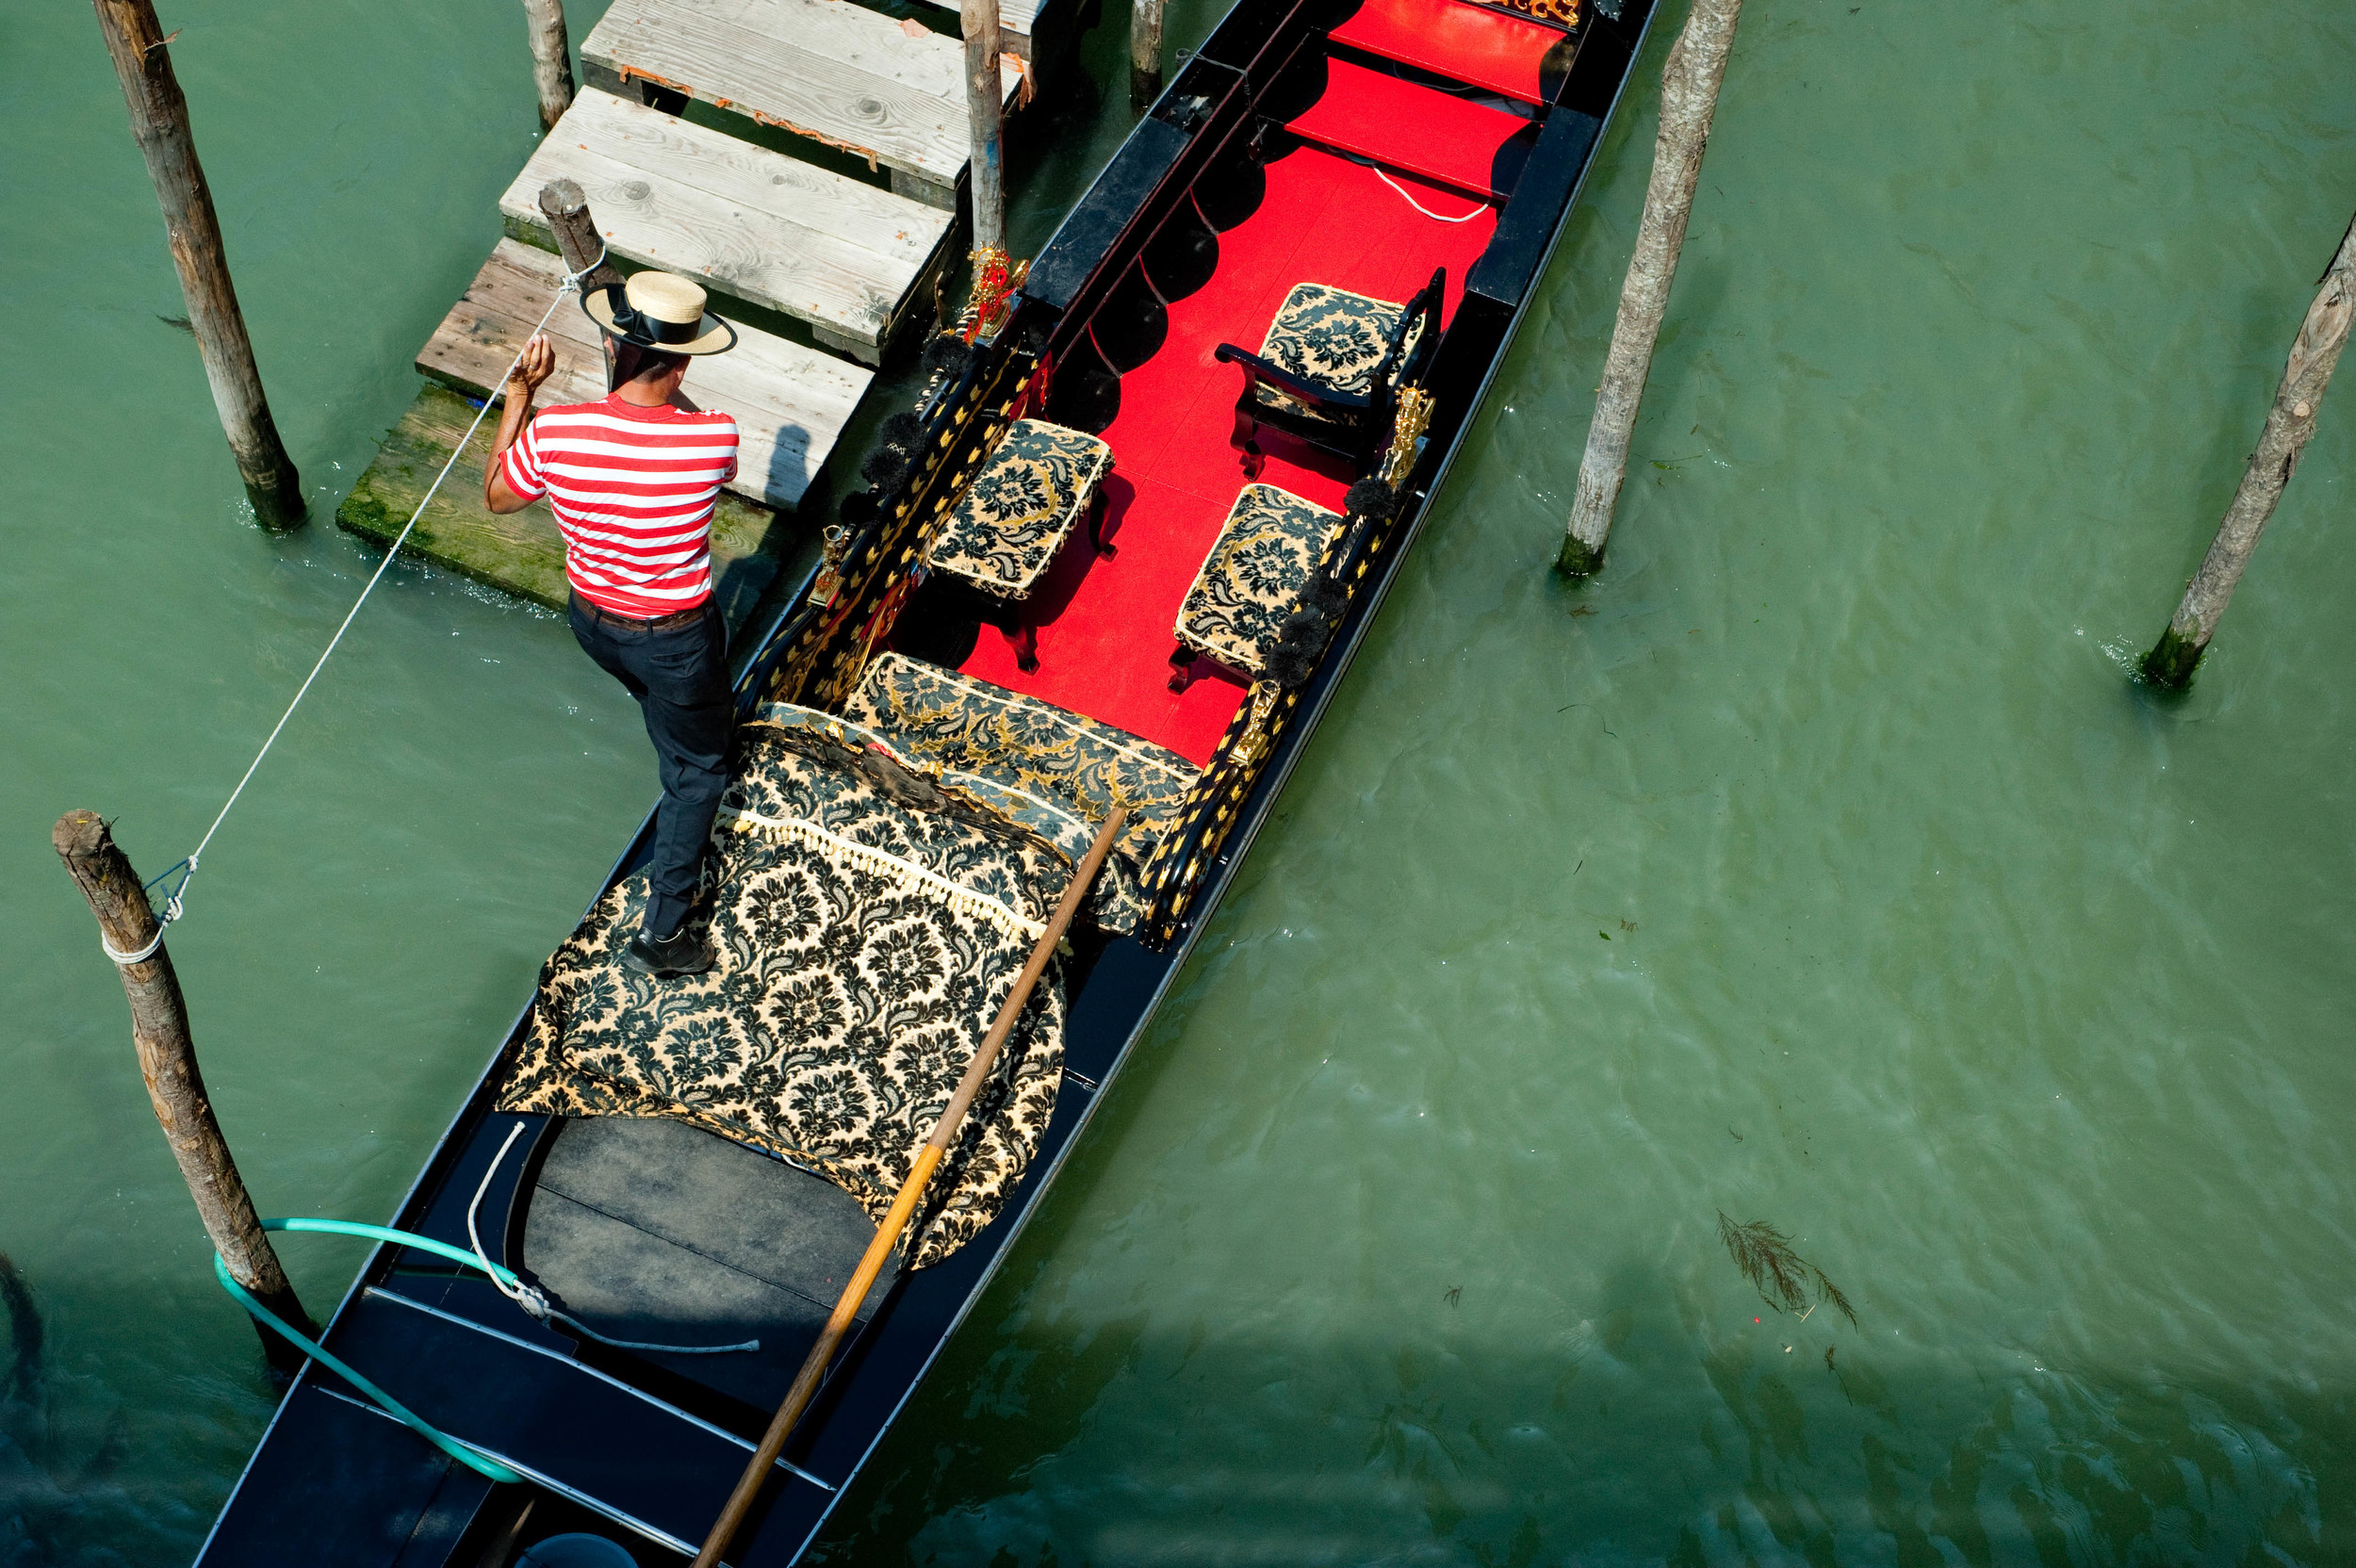 Seen while I was passing through Venice during my semester abroad in 2011